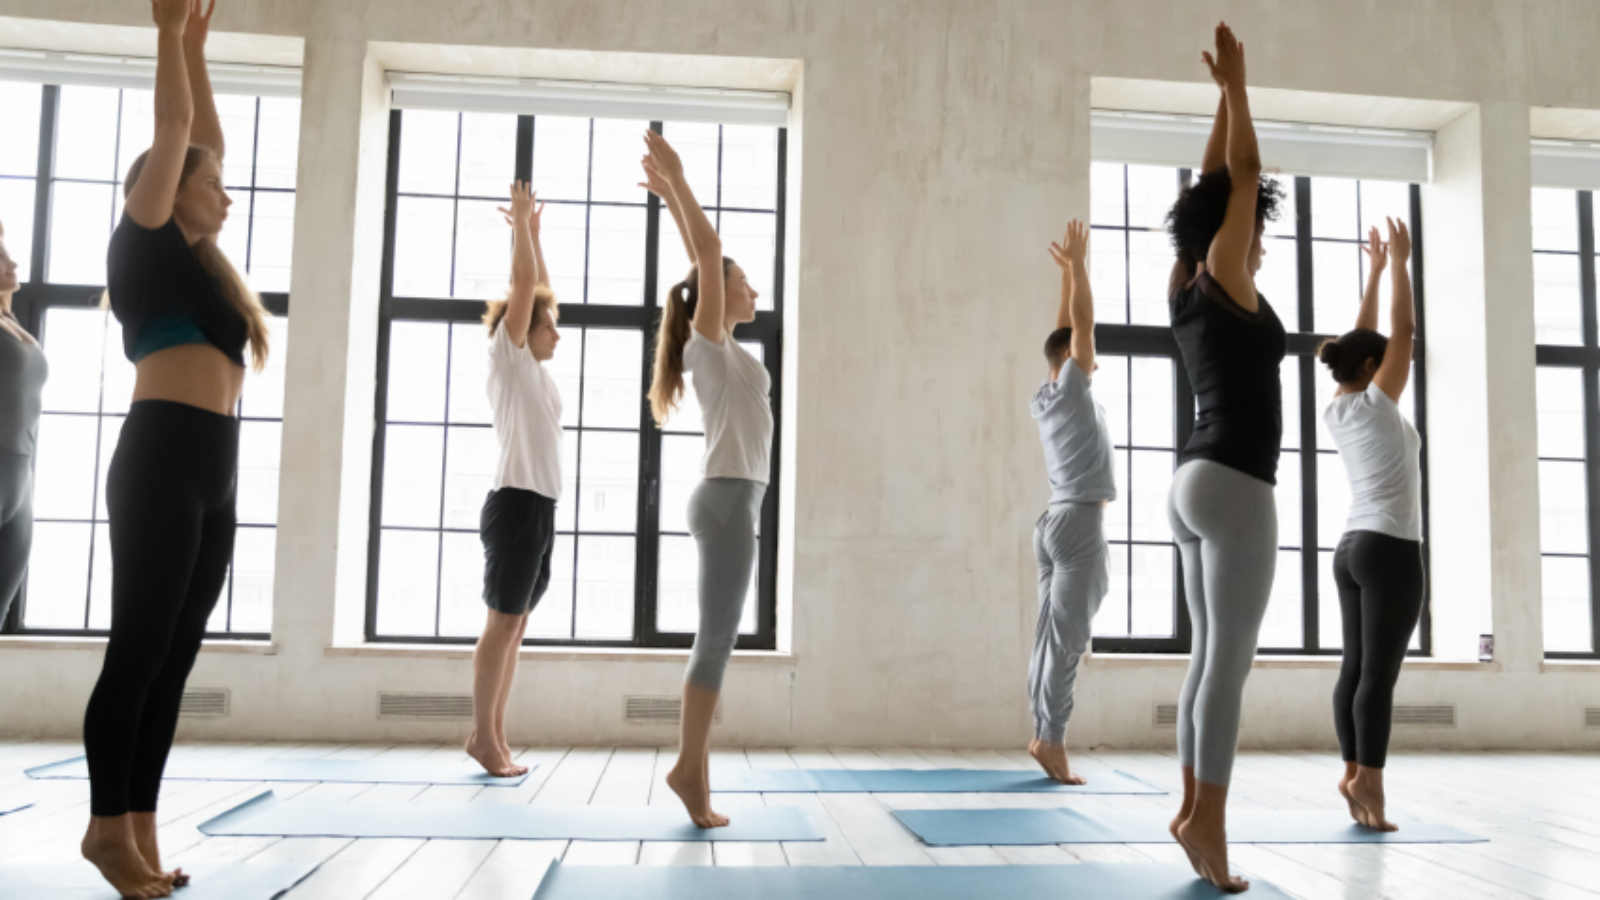 Healthy feet make for greater comfort and ease in yoga balance poses and other activities